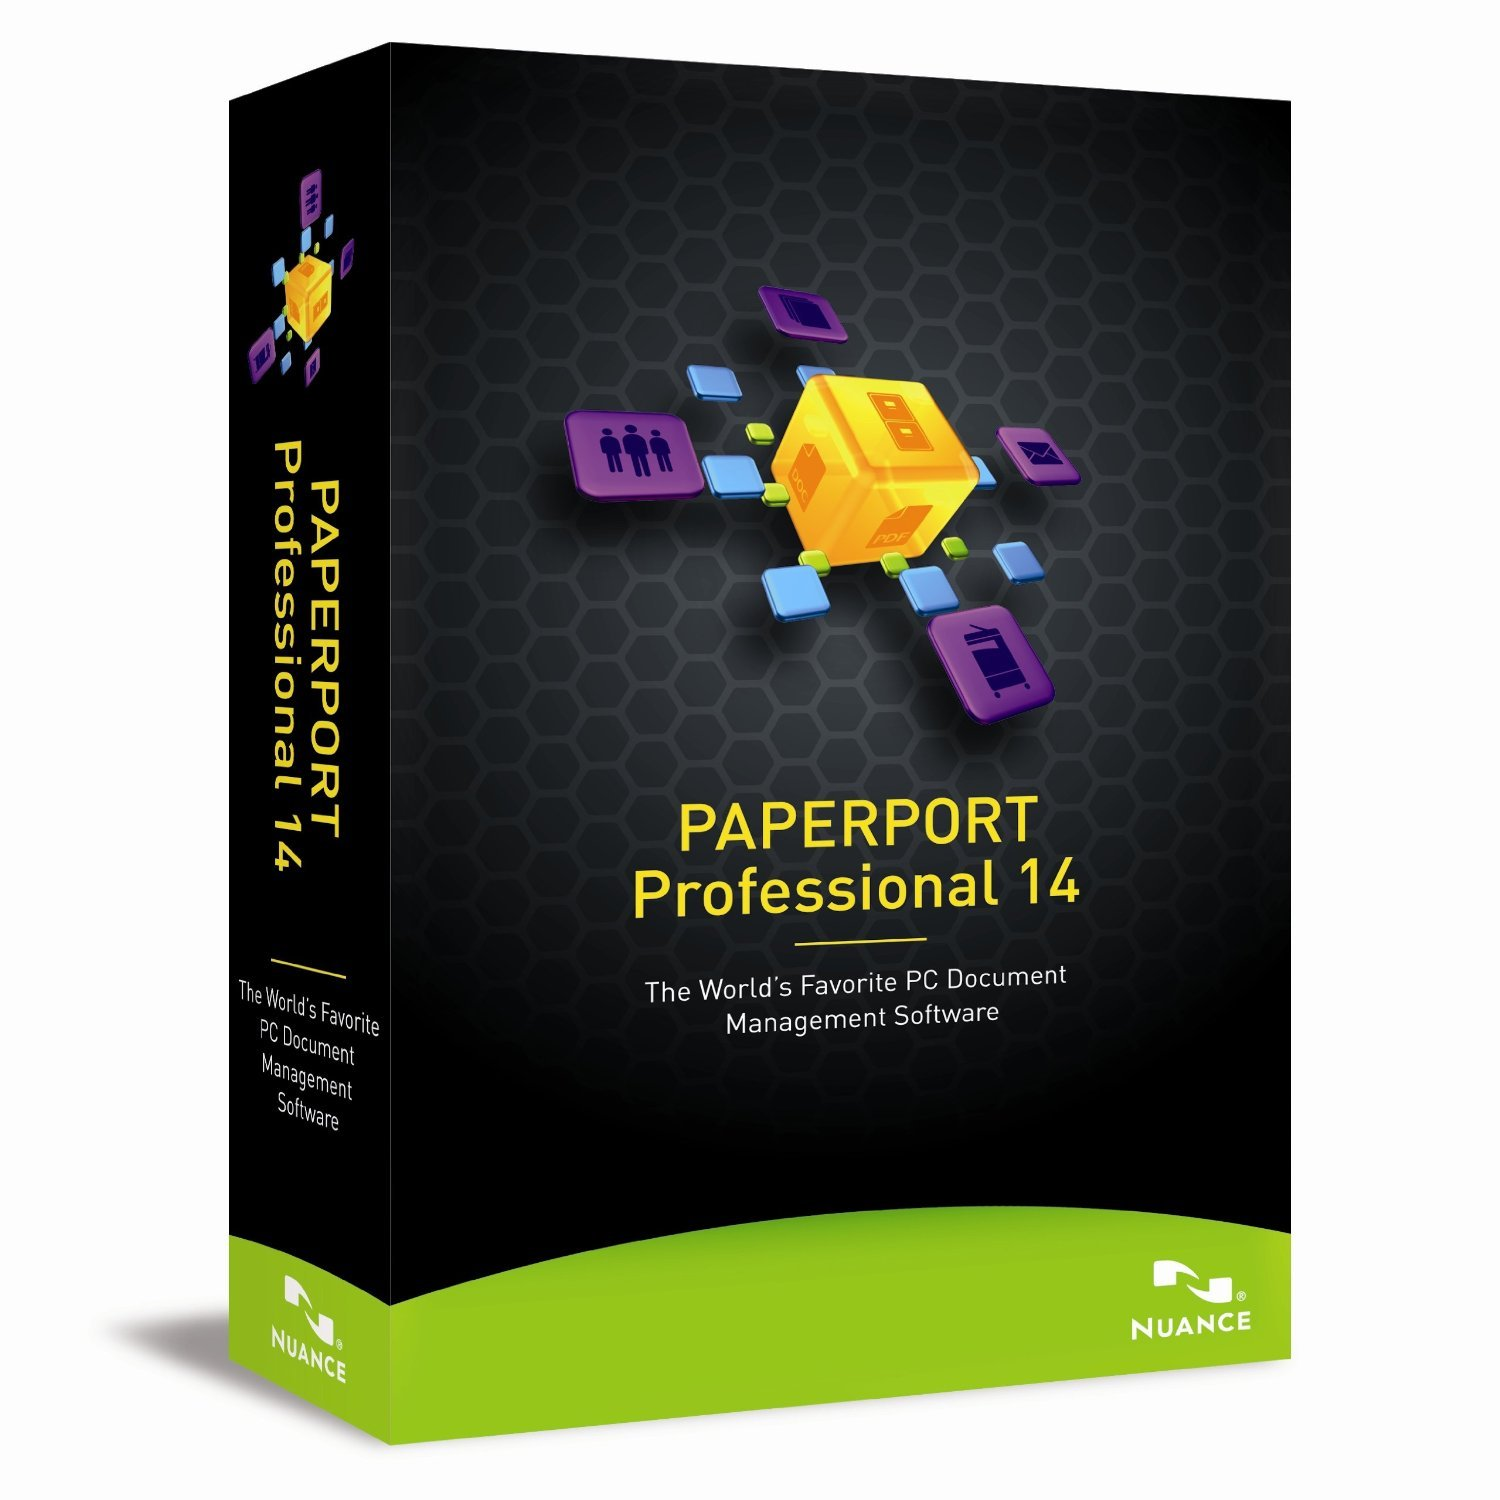 Nuance PaperPort Professional 14 - Brand New Sealed in Retail Box